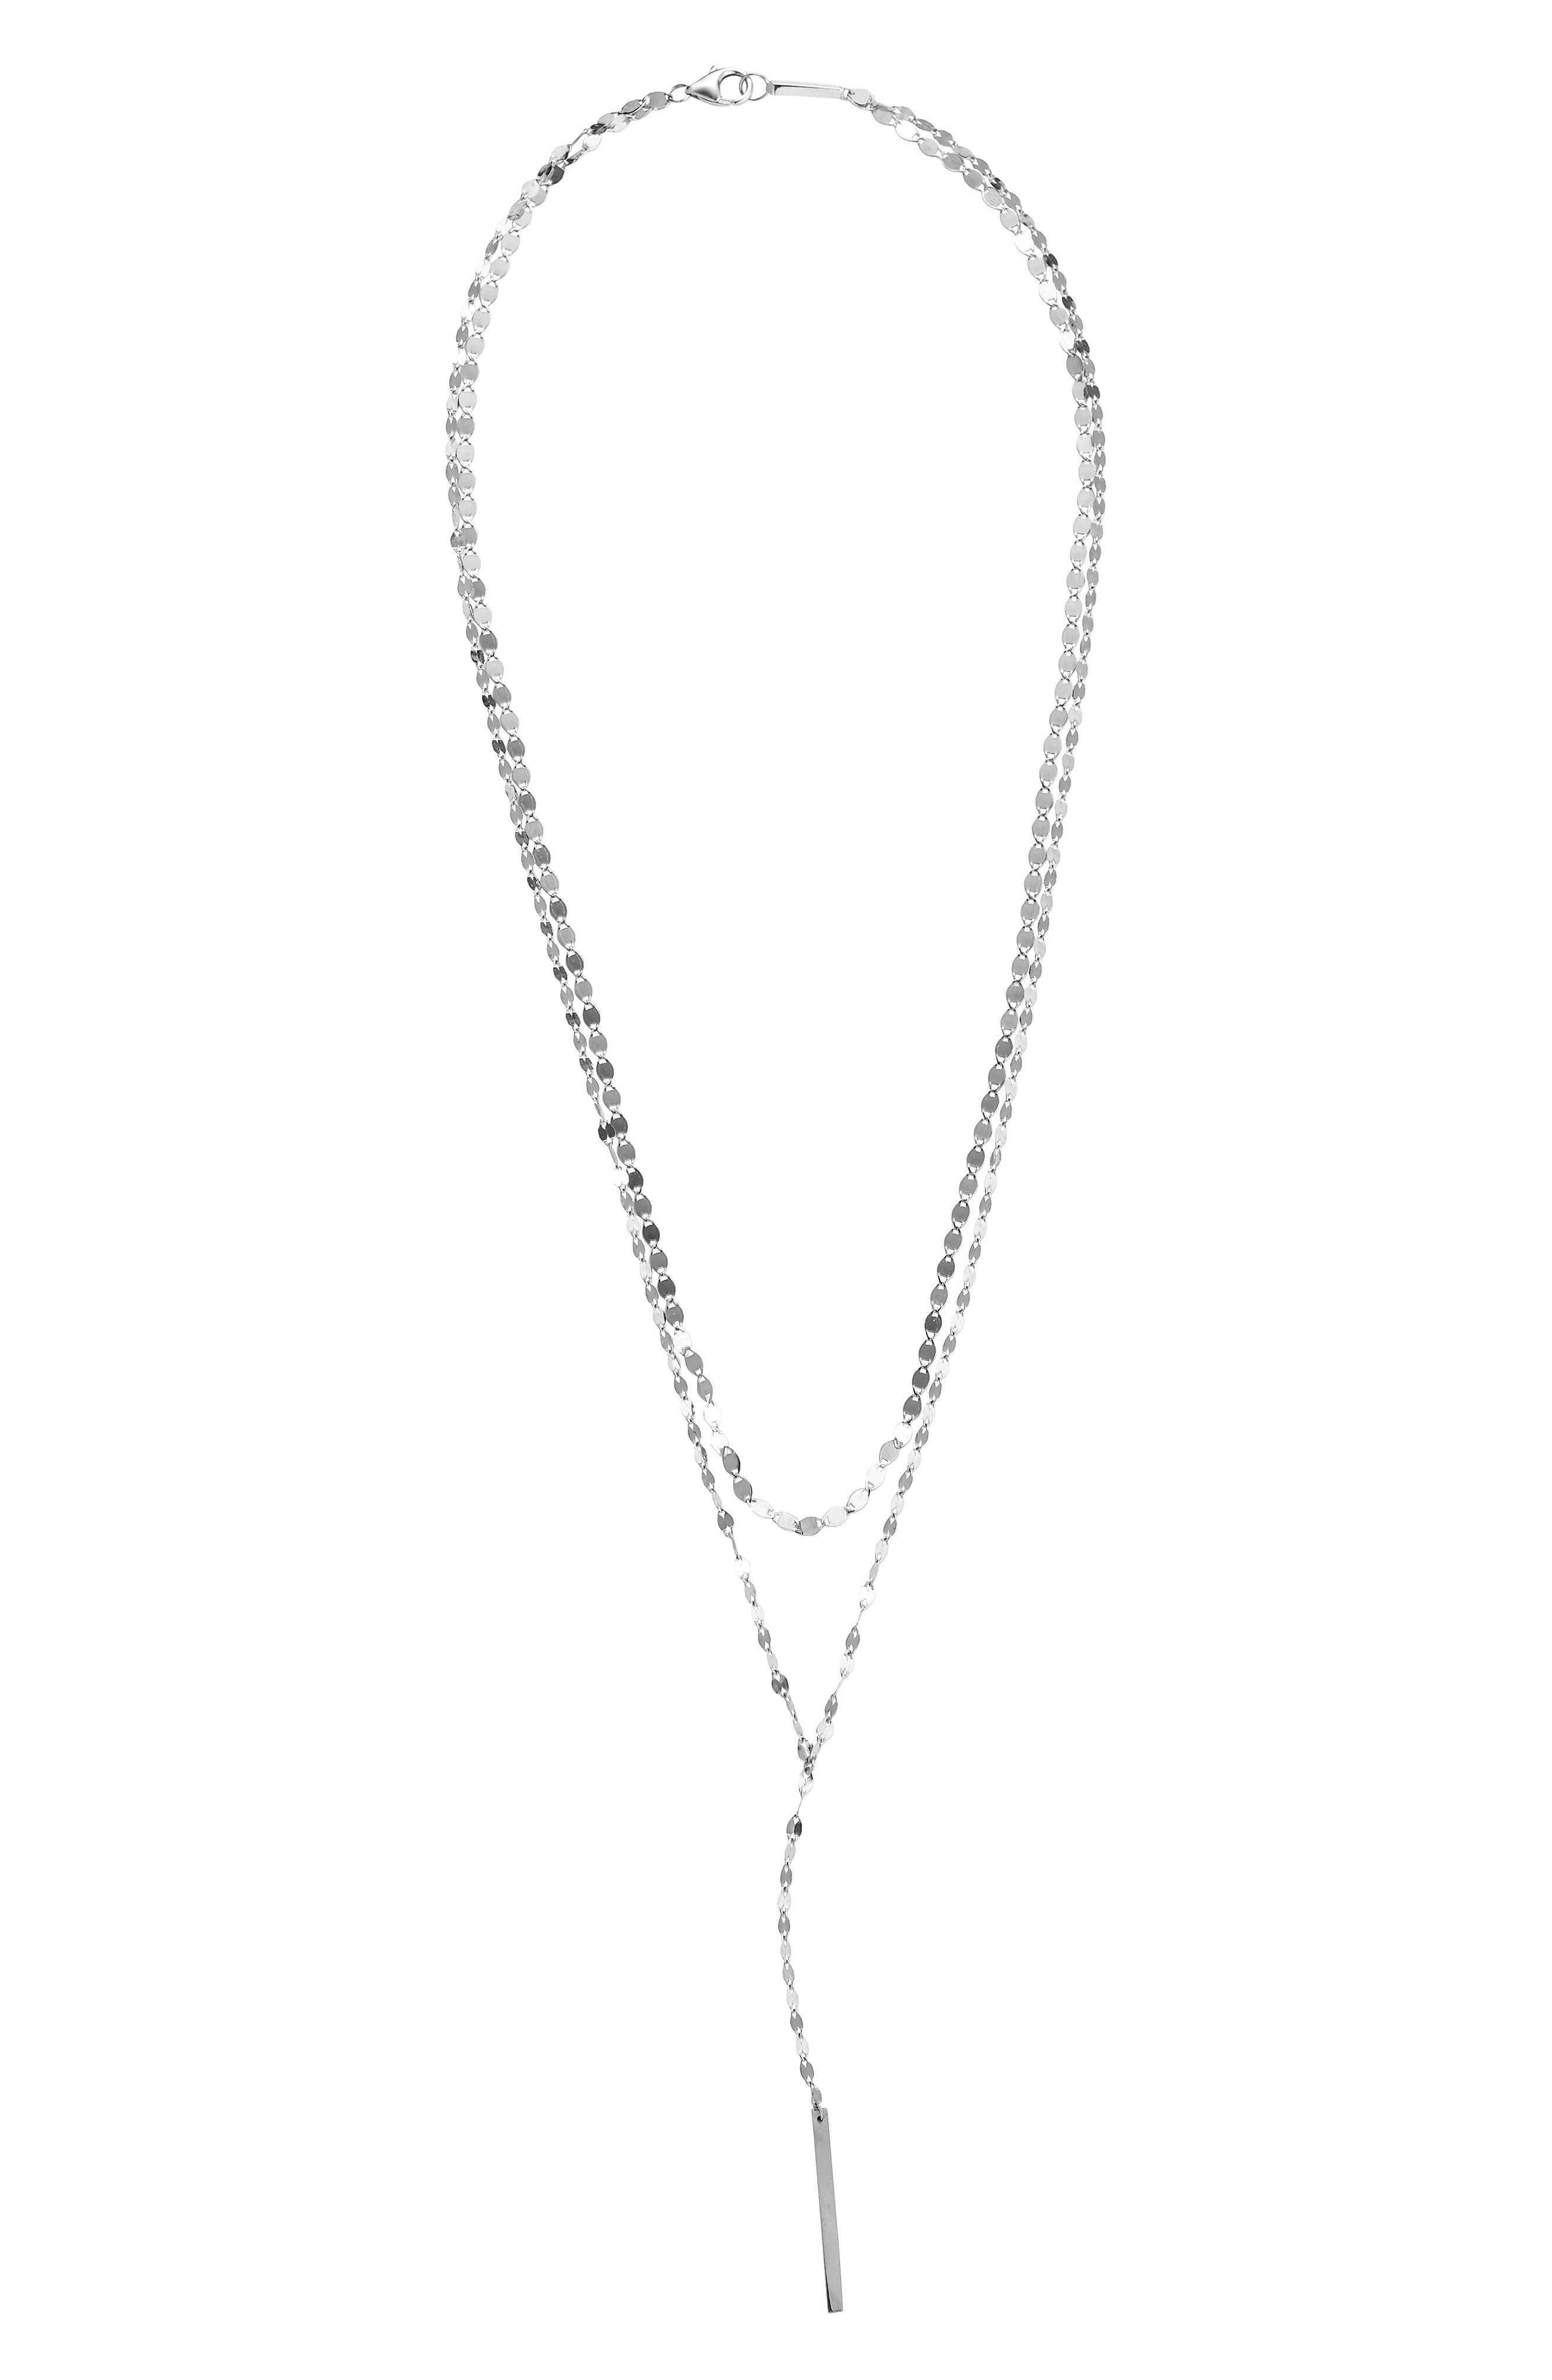 Y-Necklace,                             Main thumbnail 1, color,                             WHITE GOLD